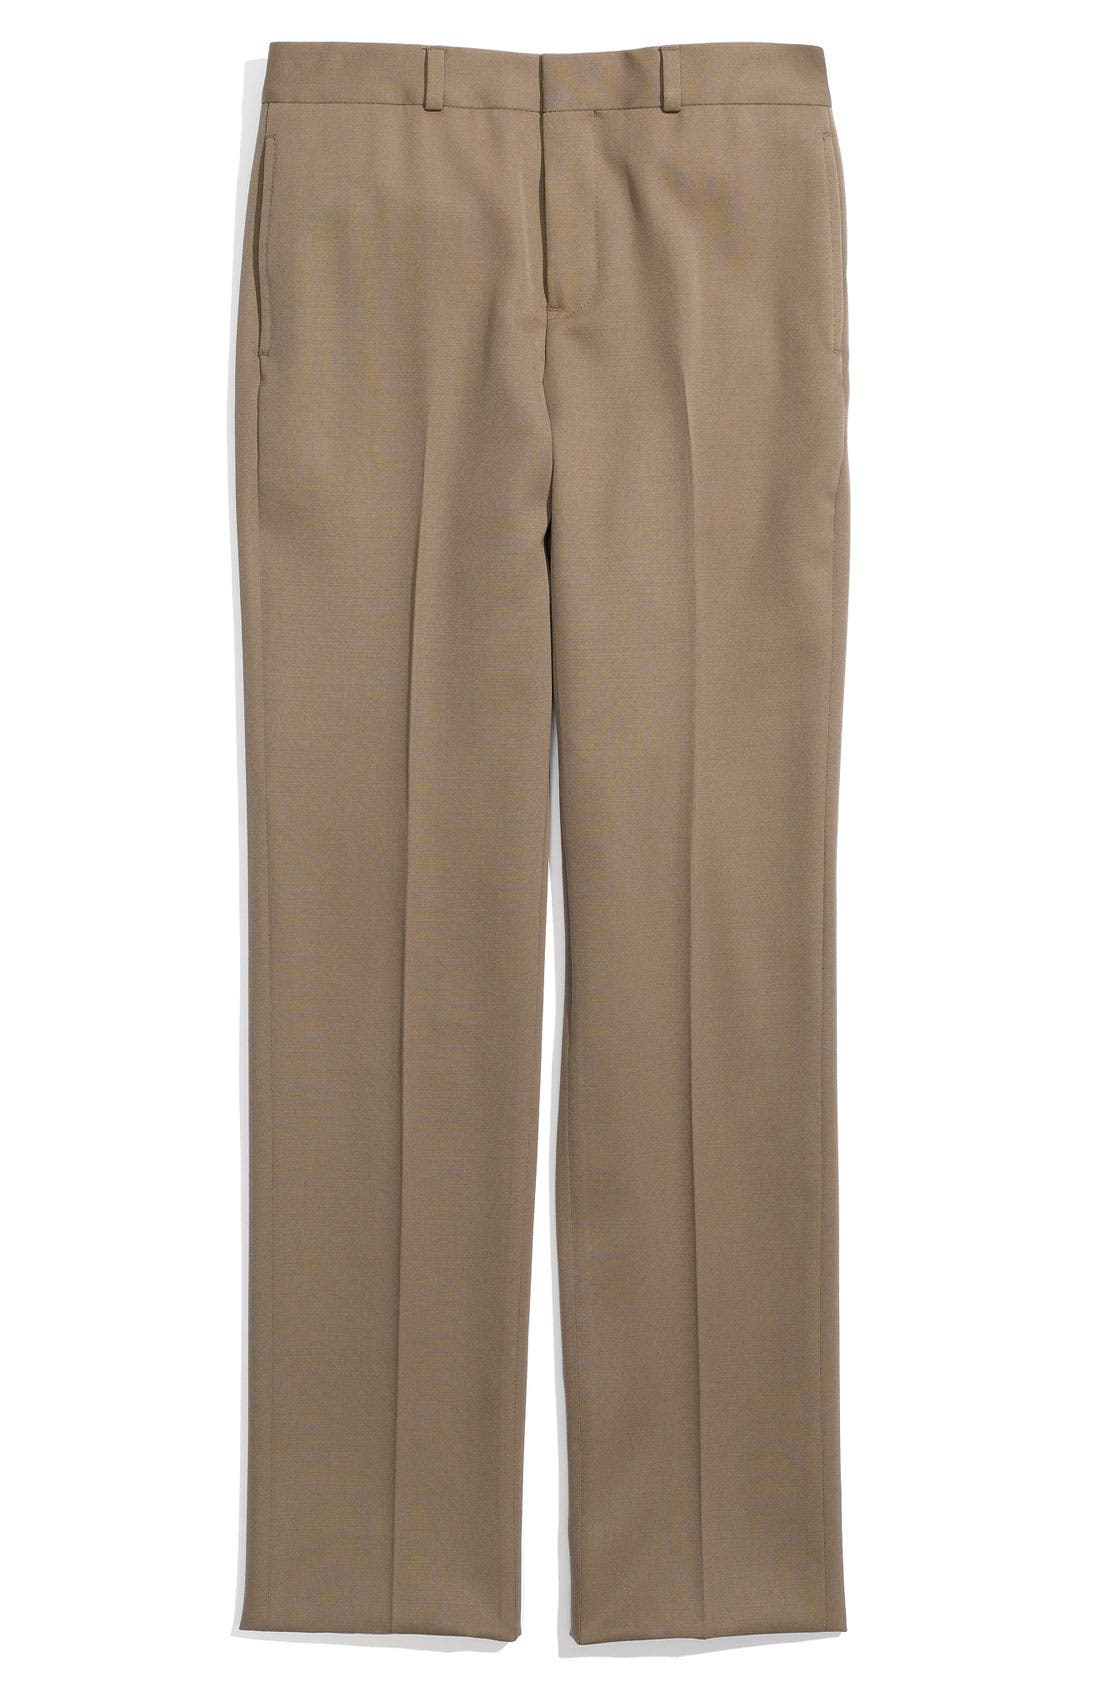 Alternate Image 1 Selected - Brooks Brothers Flat Front Wool Trousers (Big Boys)